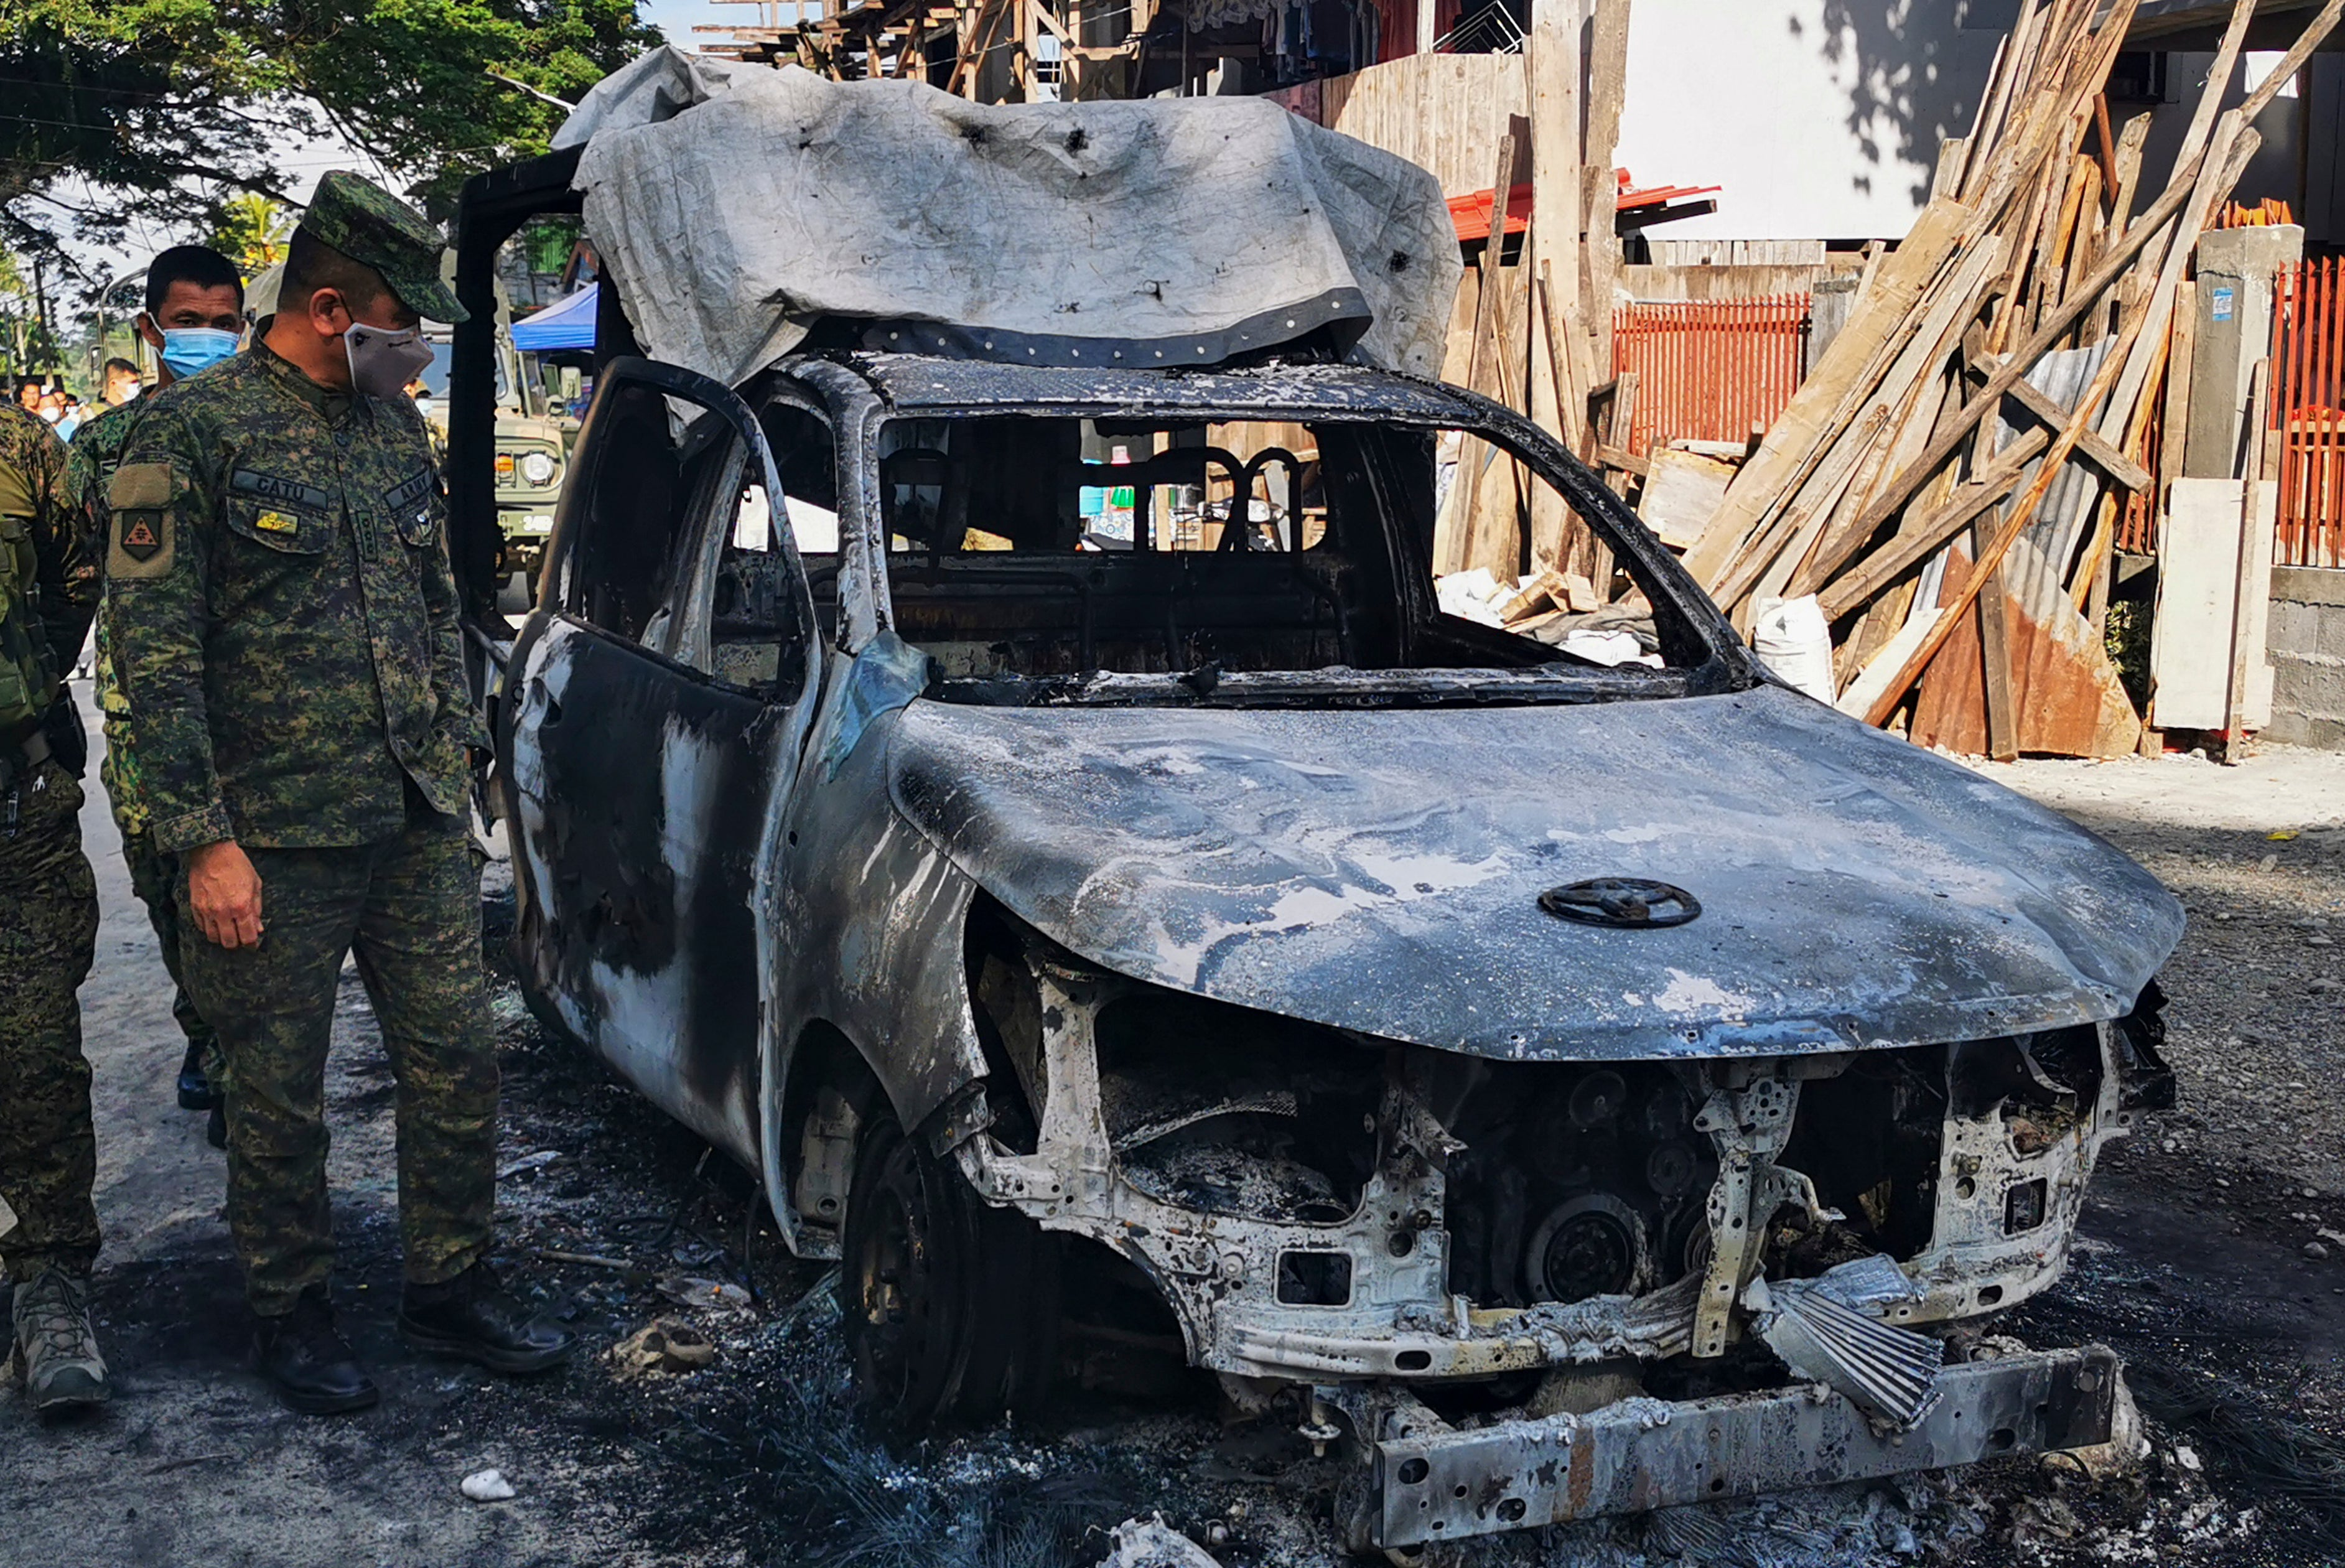 Militants open fire and burn police car in Philippine town - The Independent